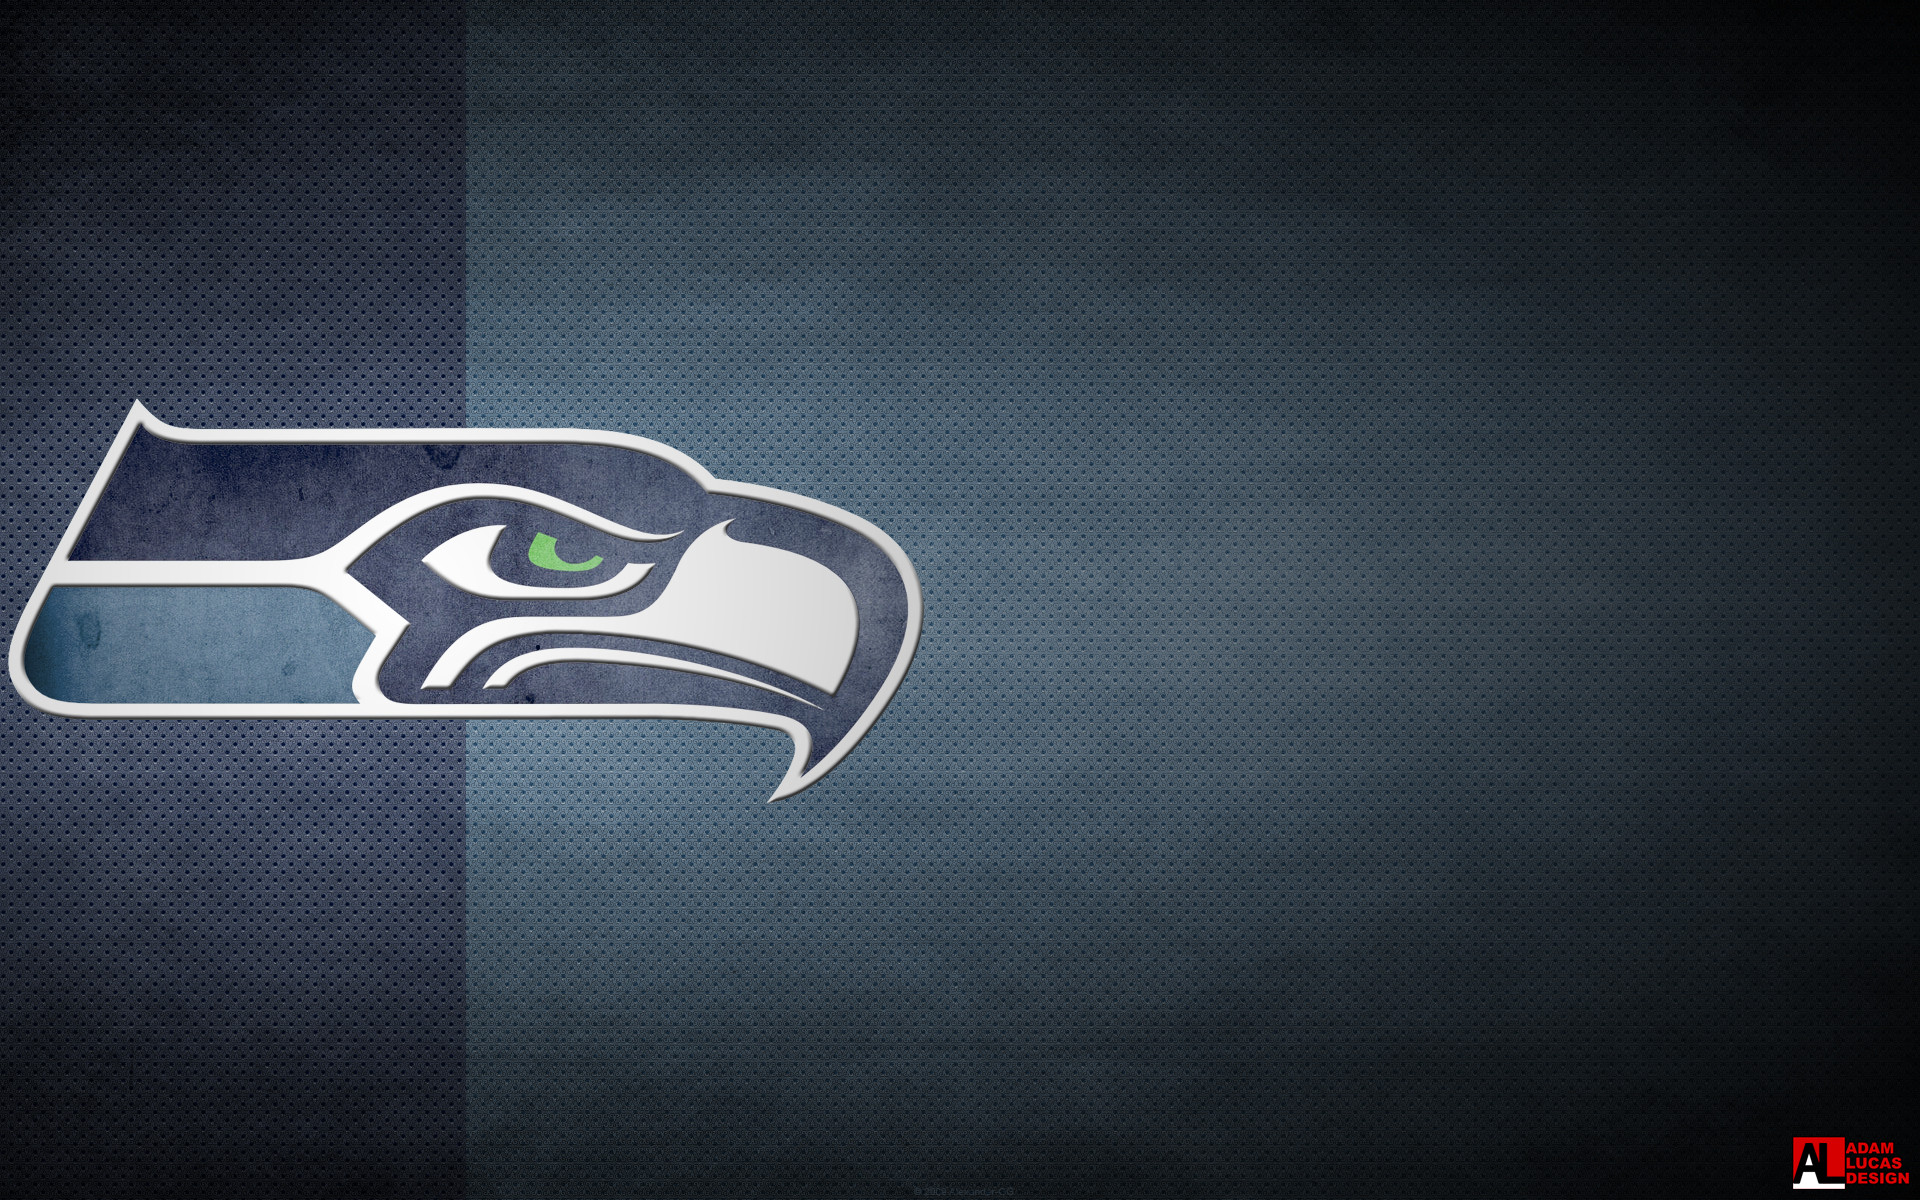 Seattle Seahawks Wallpaper 1920x1080: Seahawks Wallpaper And Screensavers (68+ Images